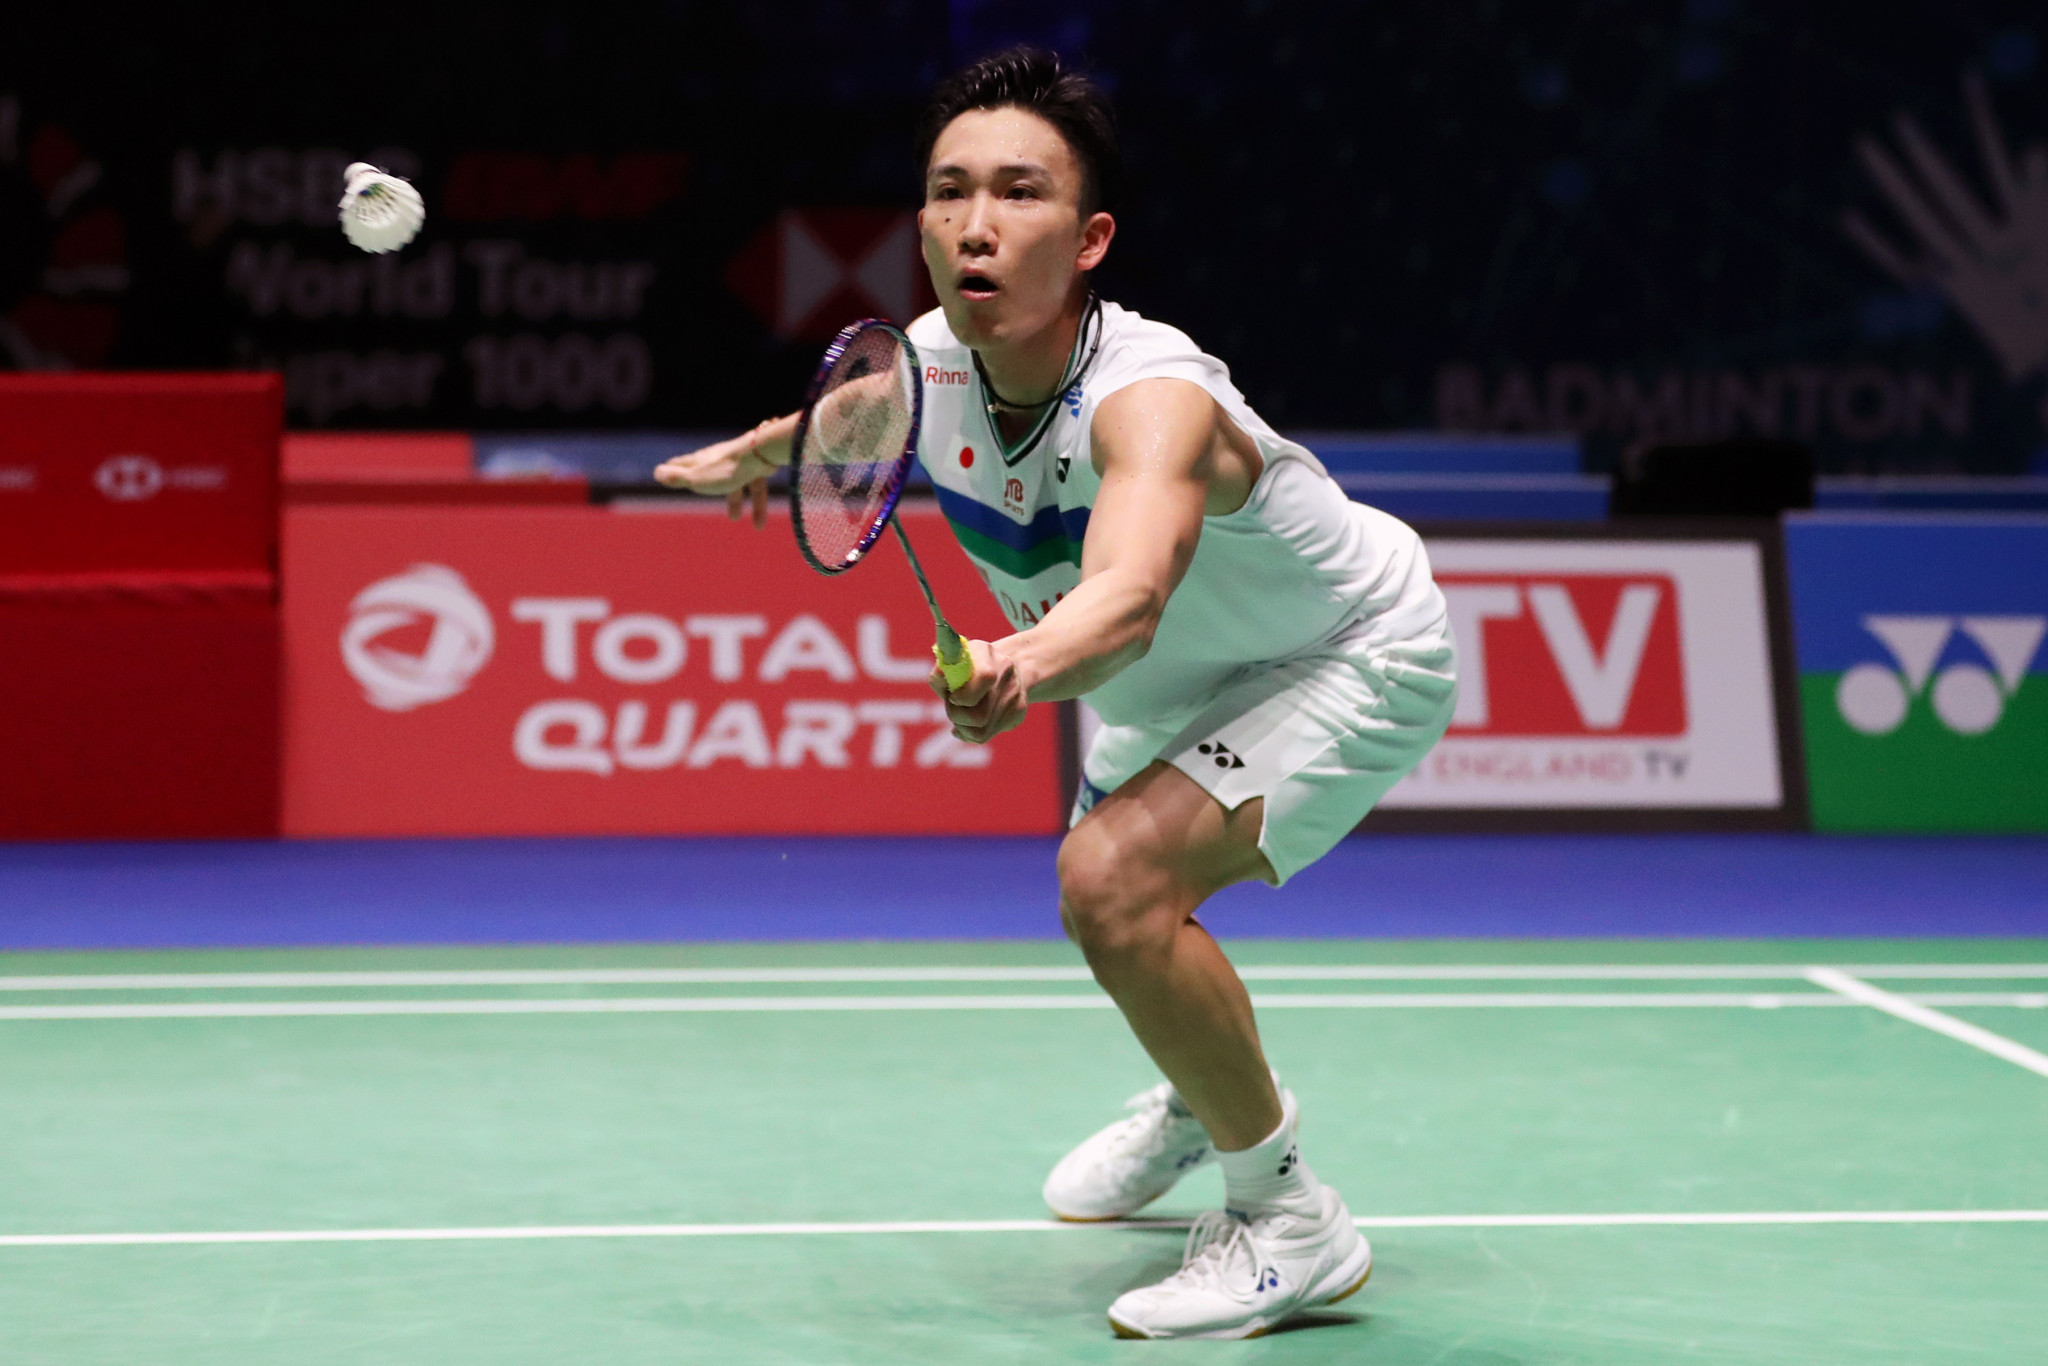 Kento Momota overcame Parupalli Kashyap in his first international match in more than a year ©Getty Images